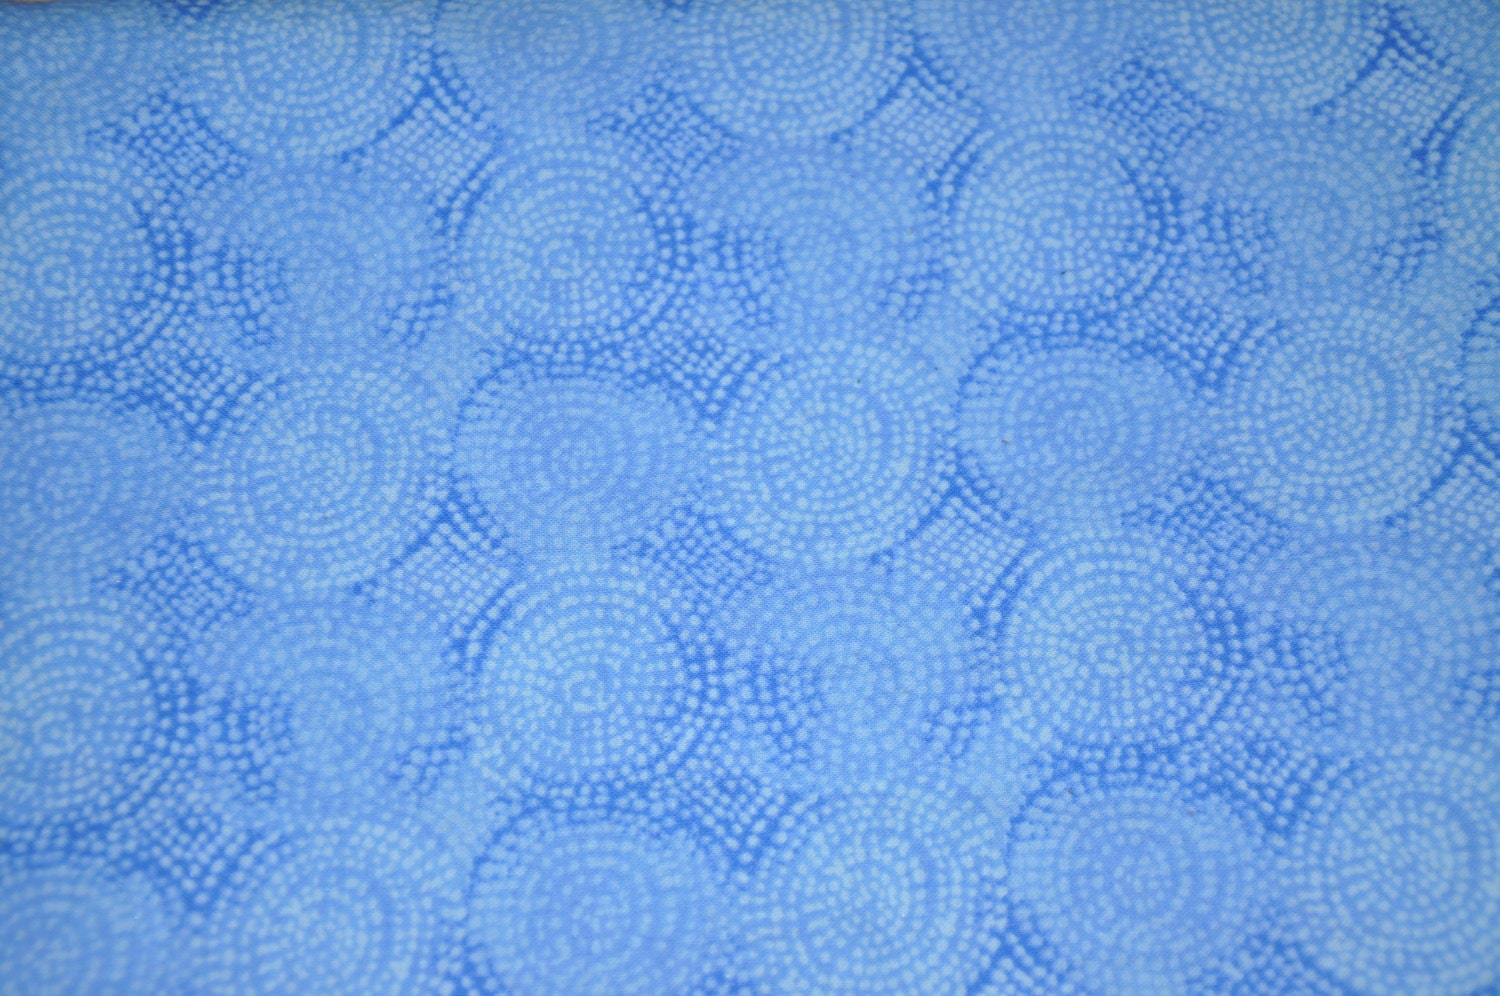 One Yard Of Blue Swirl 100 Cotton Quilt Fabric From